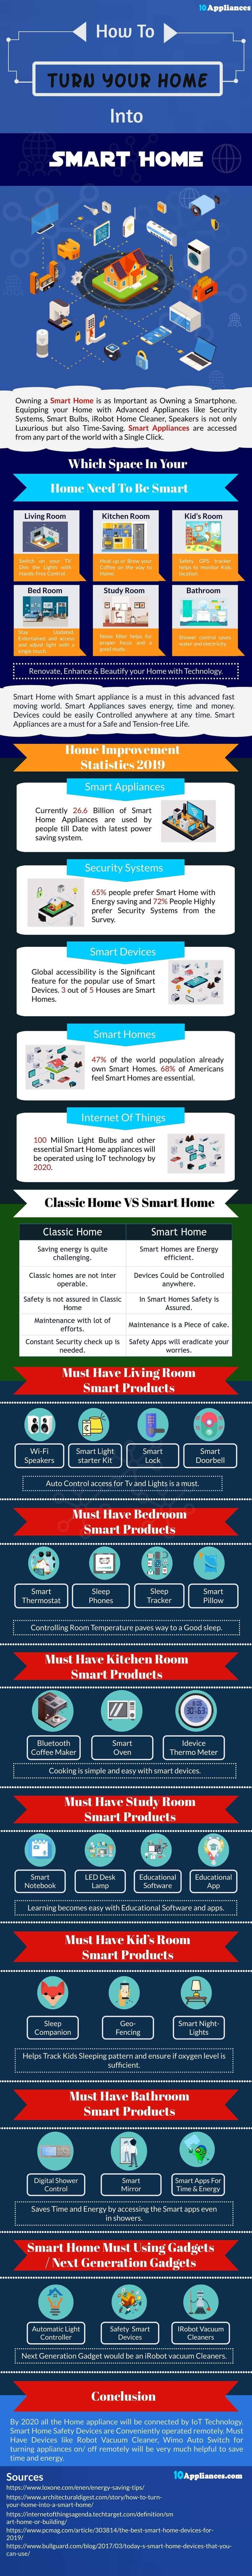 How To Turn Your Home Into Smart Home In 2019 #infographic